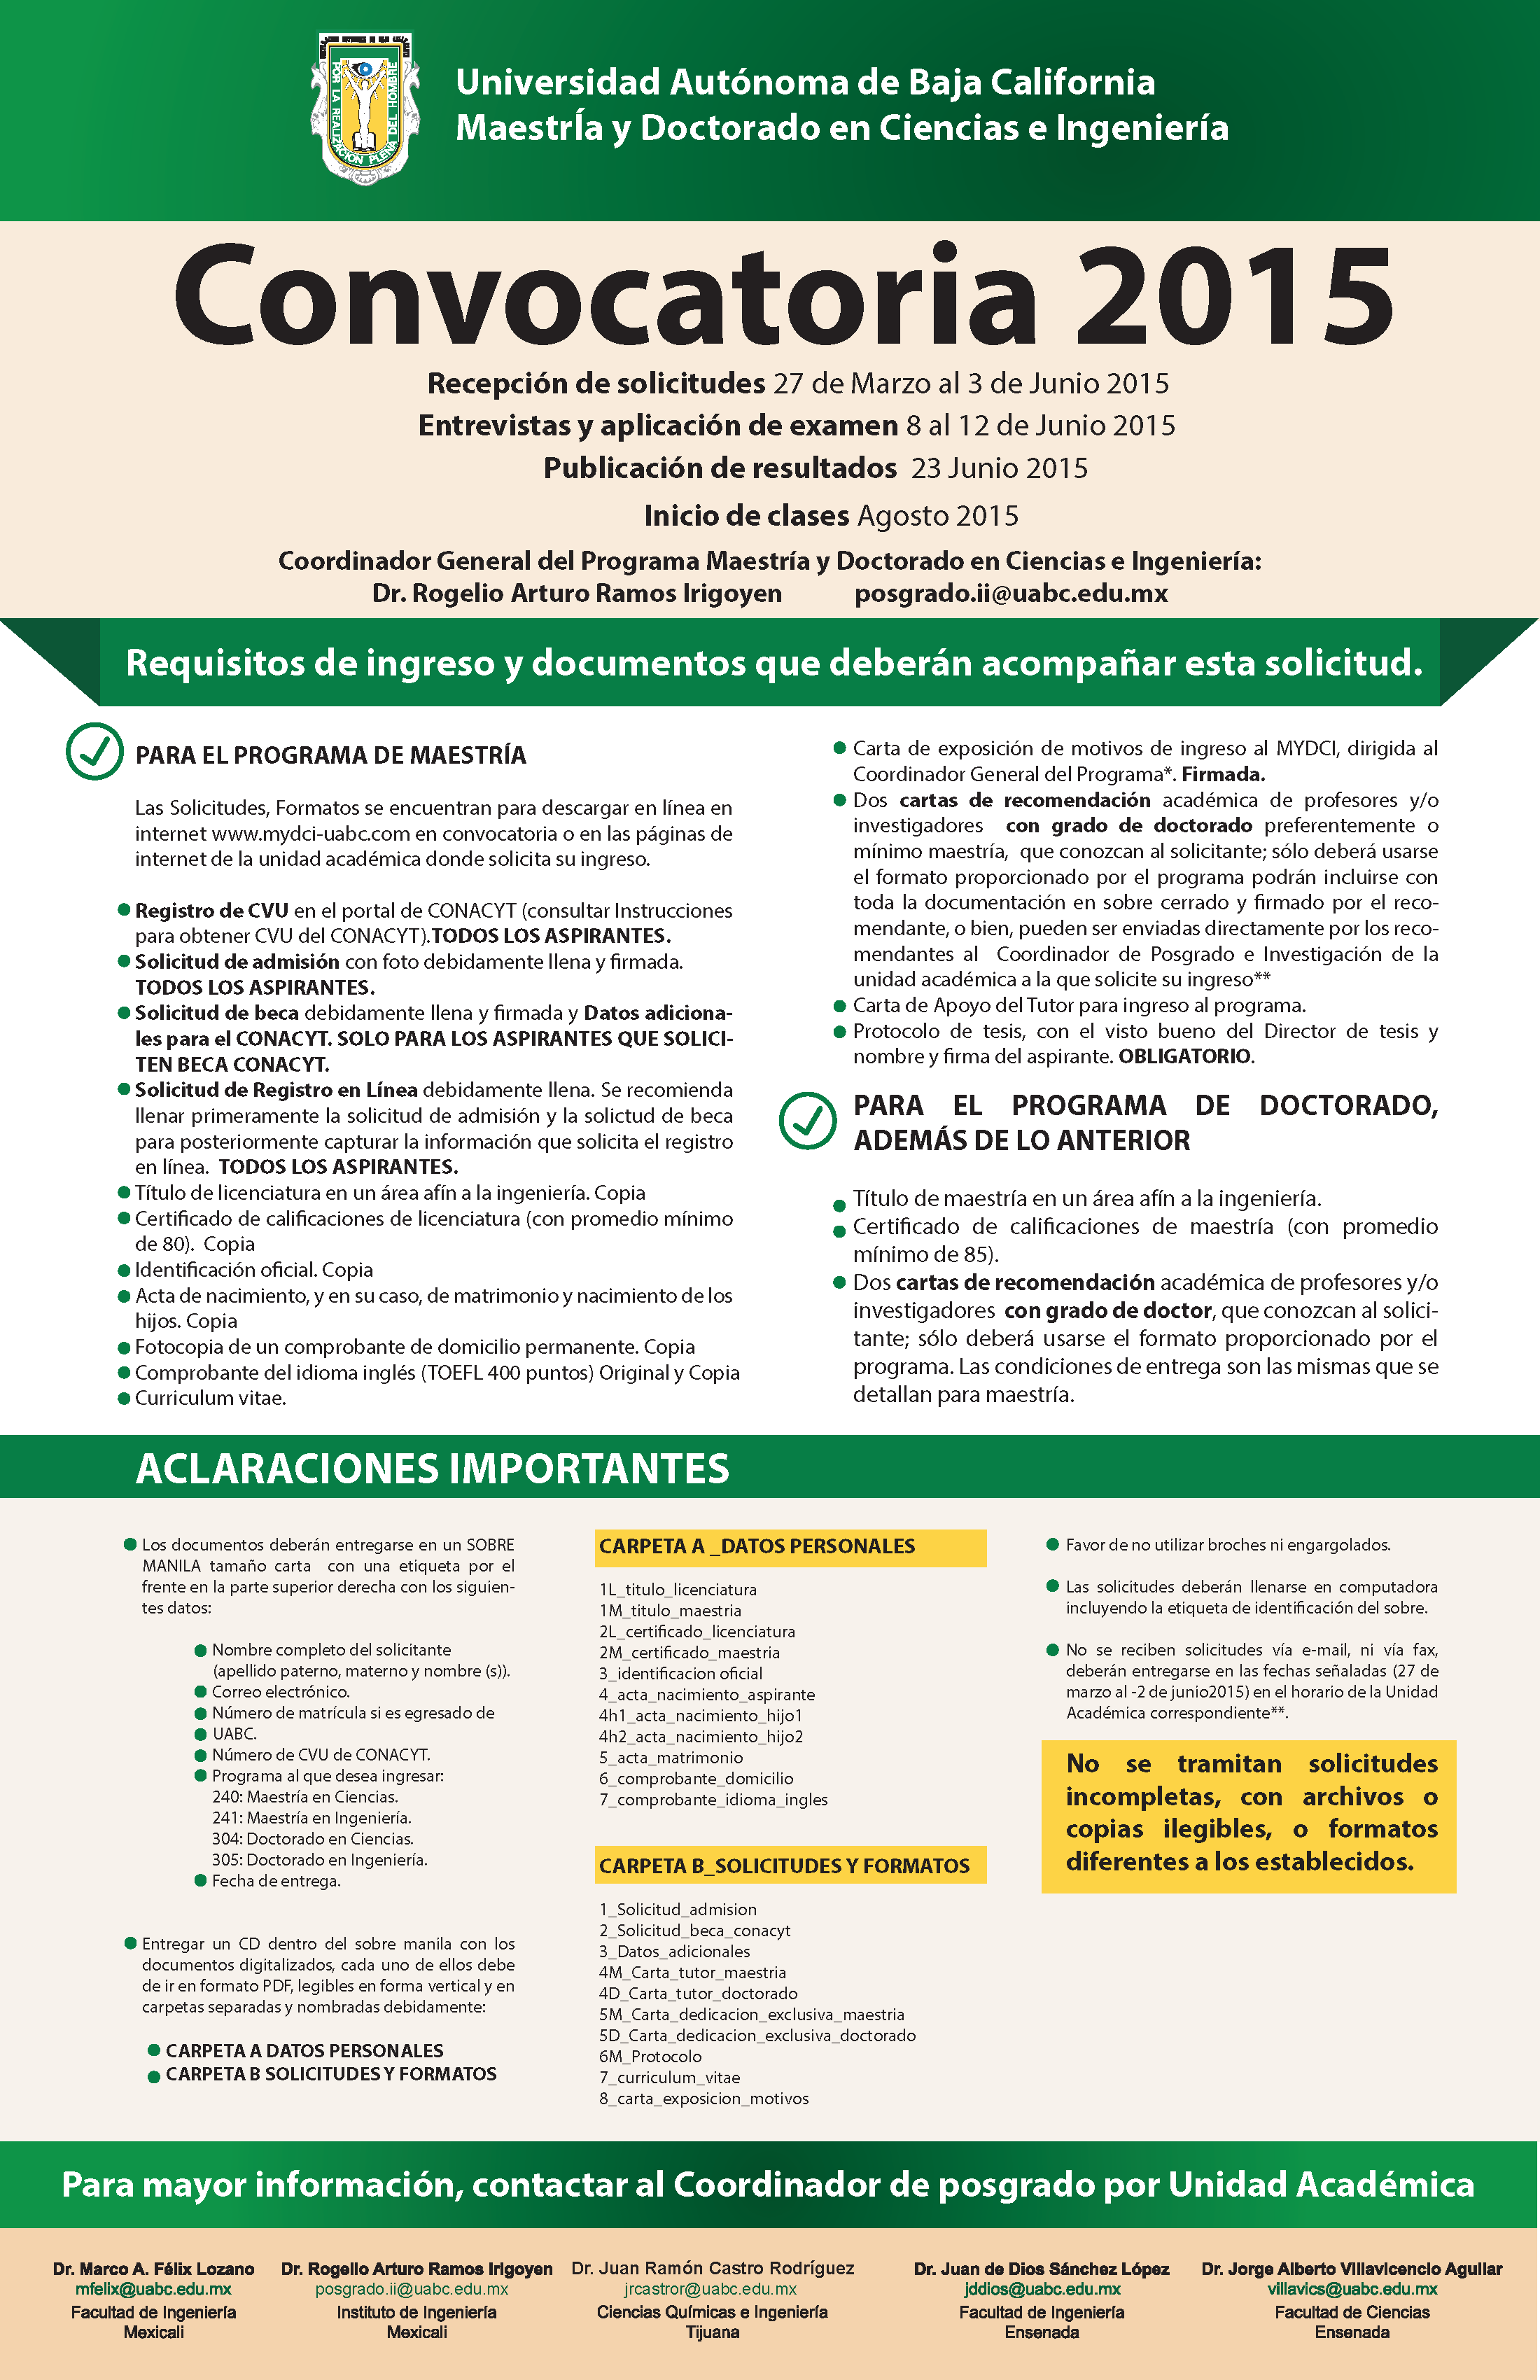 Convocatoria de salud tacna hospital hipolito unanue for Sep convocatoria plazas 2016